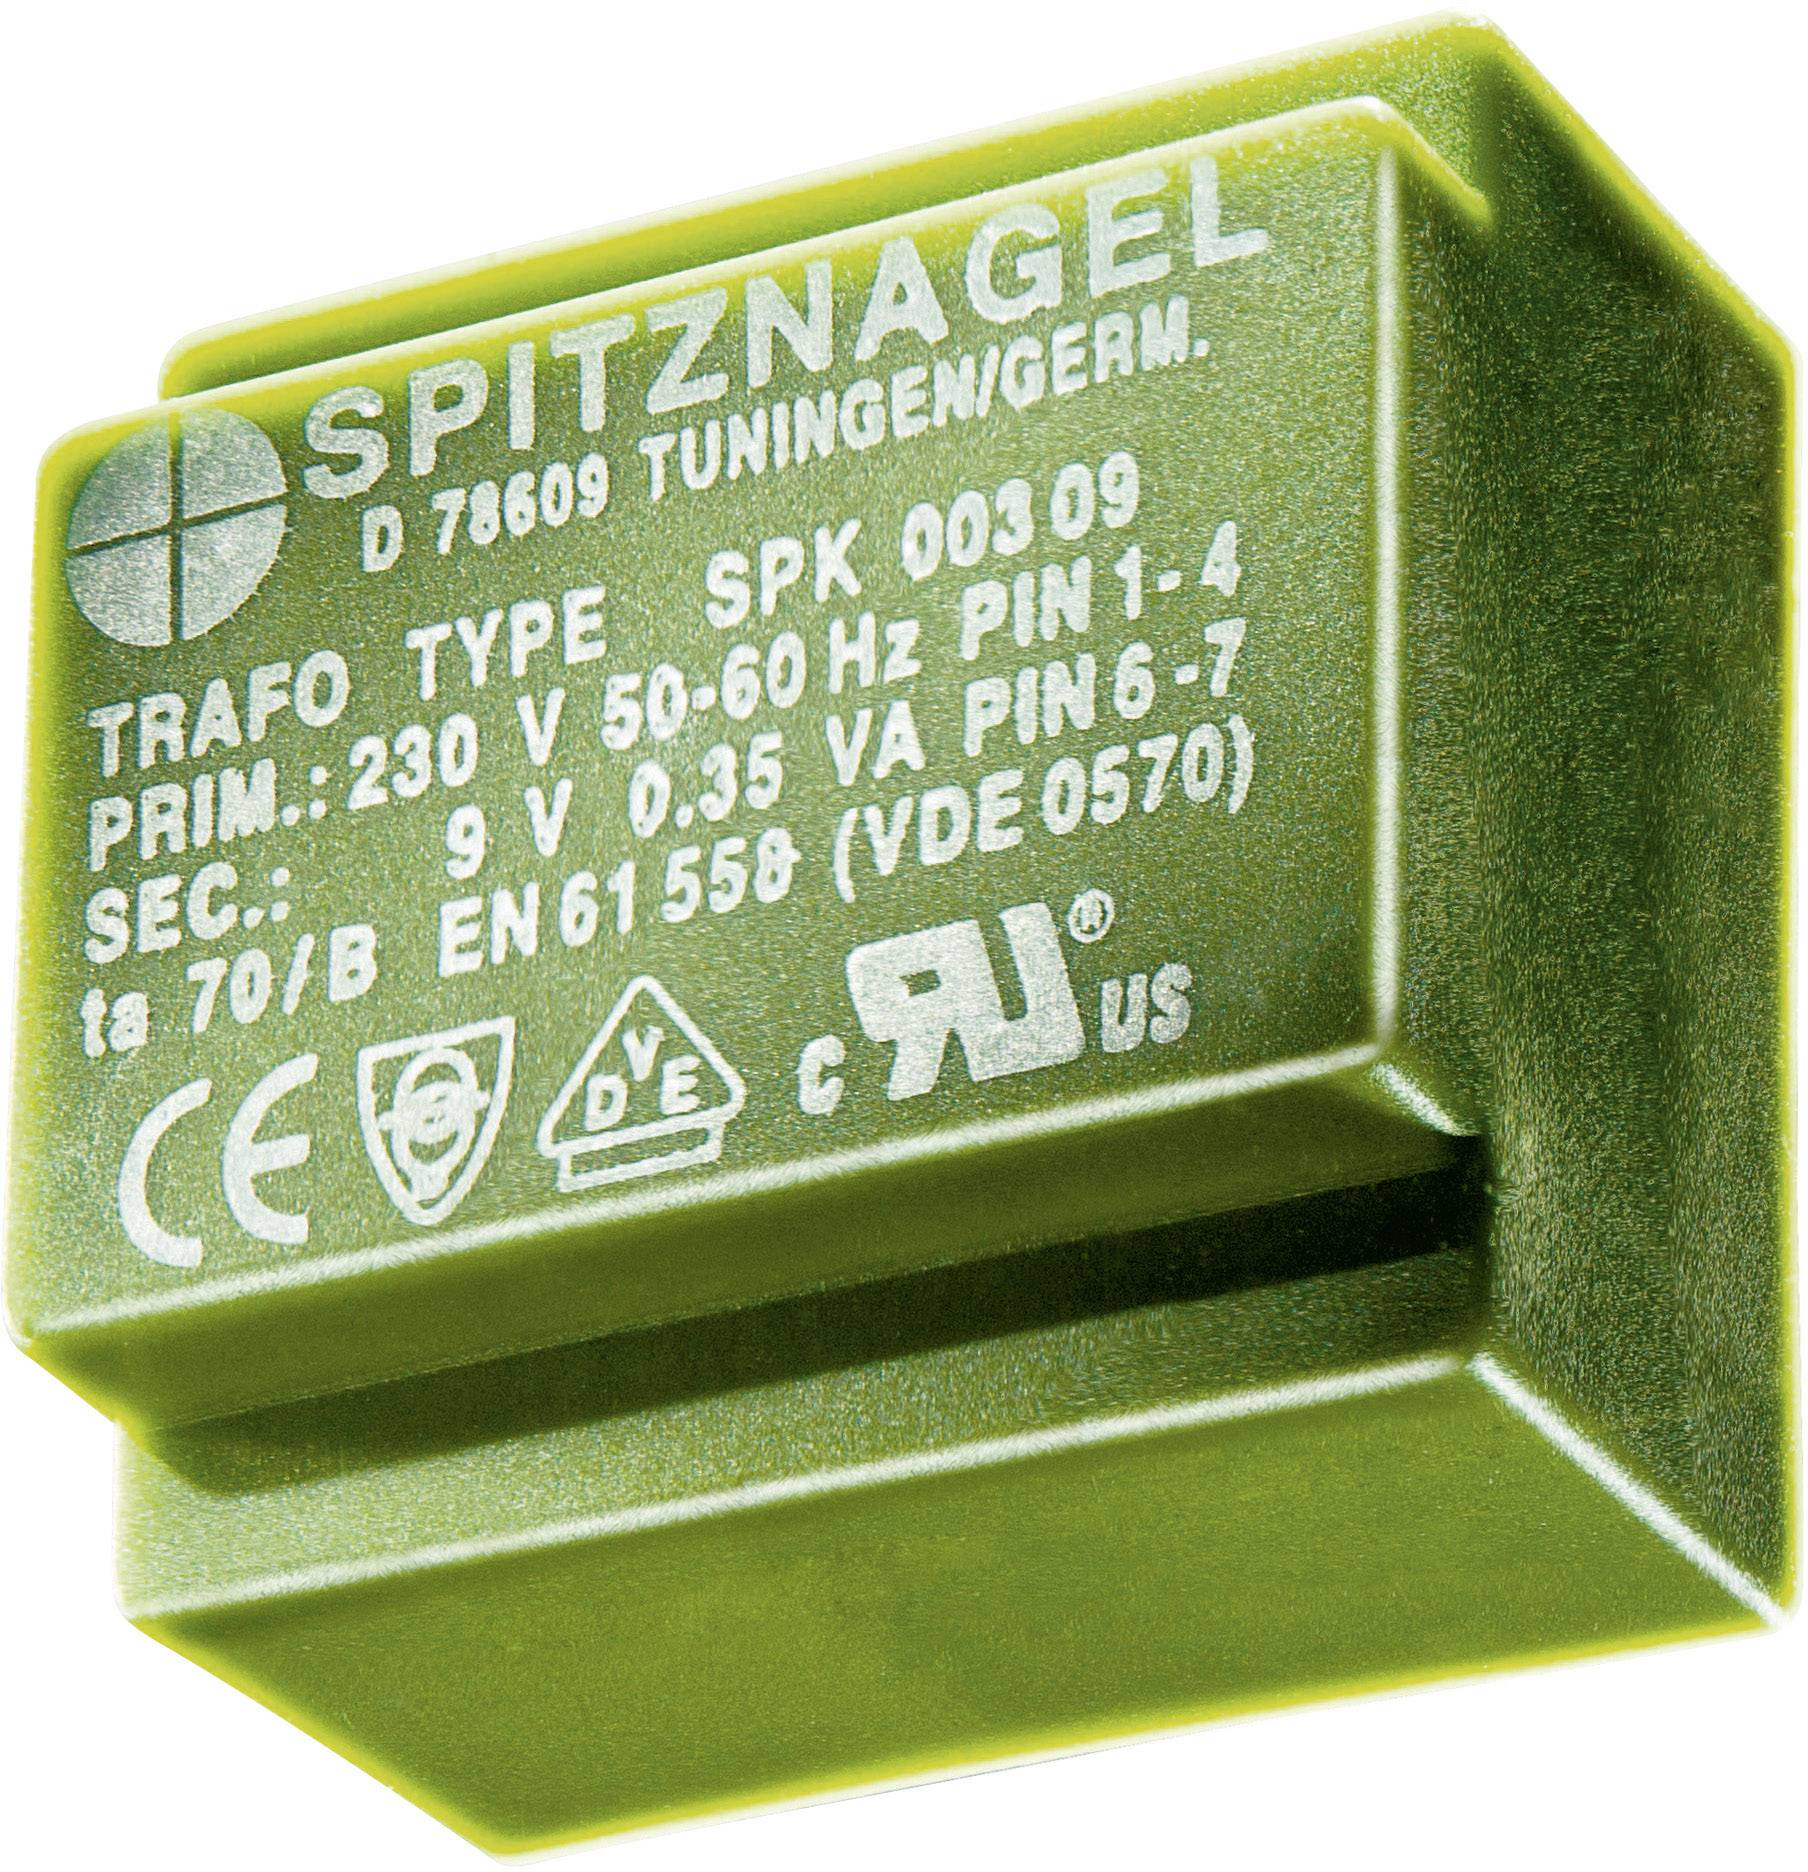 Transformátor do DPS Spitznagel El 30/5, 230 V / 6, 75 mA, 0,45 VA